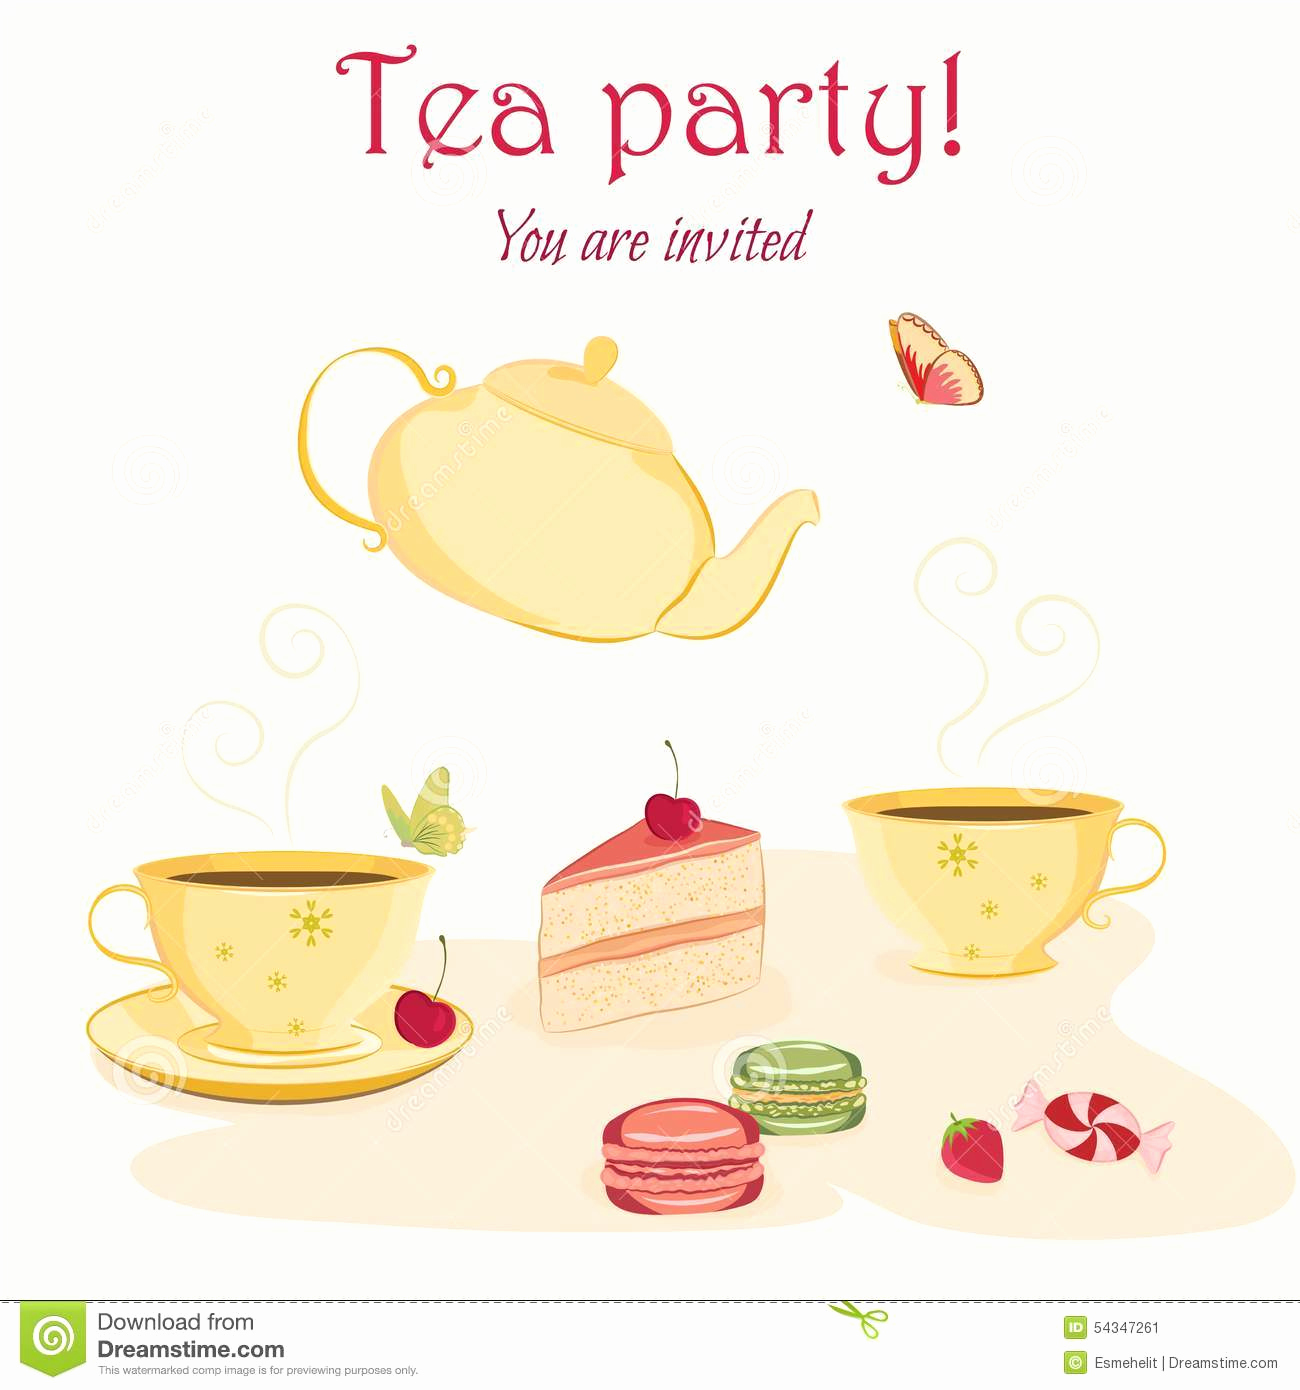 Tea Party Invitation Template Free Awesome Elegant Tea Party Invitations